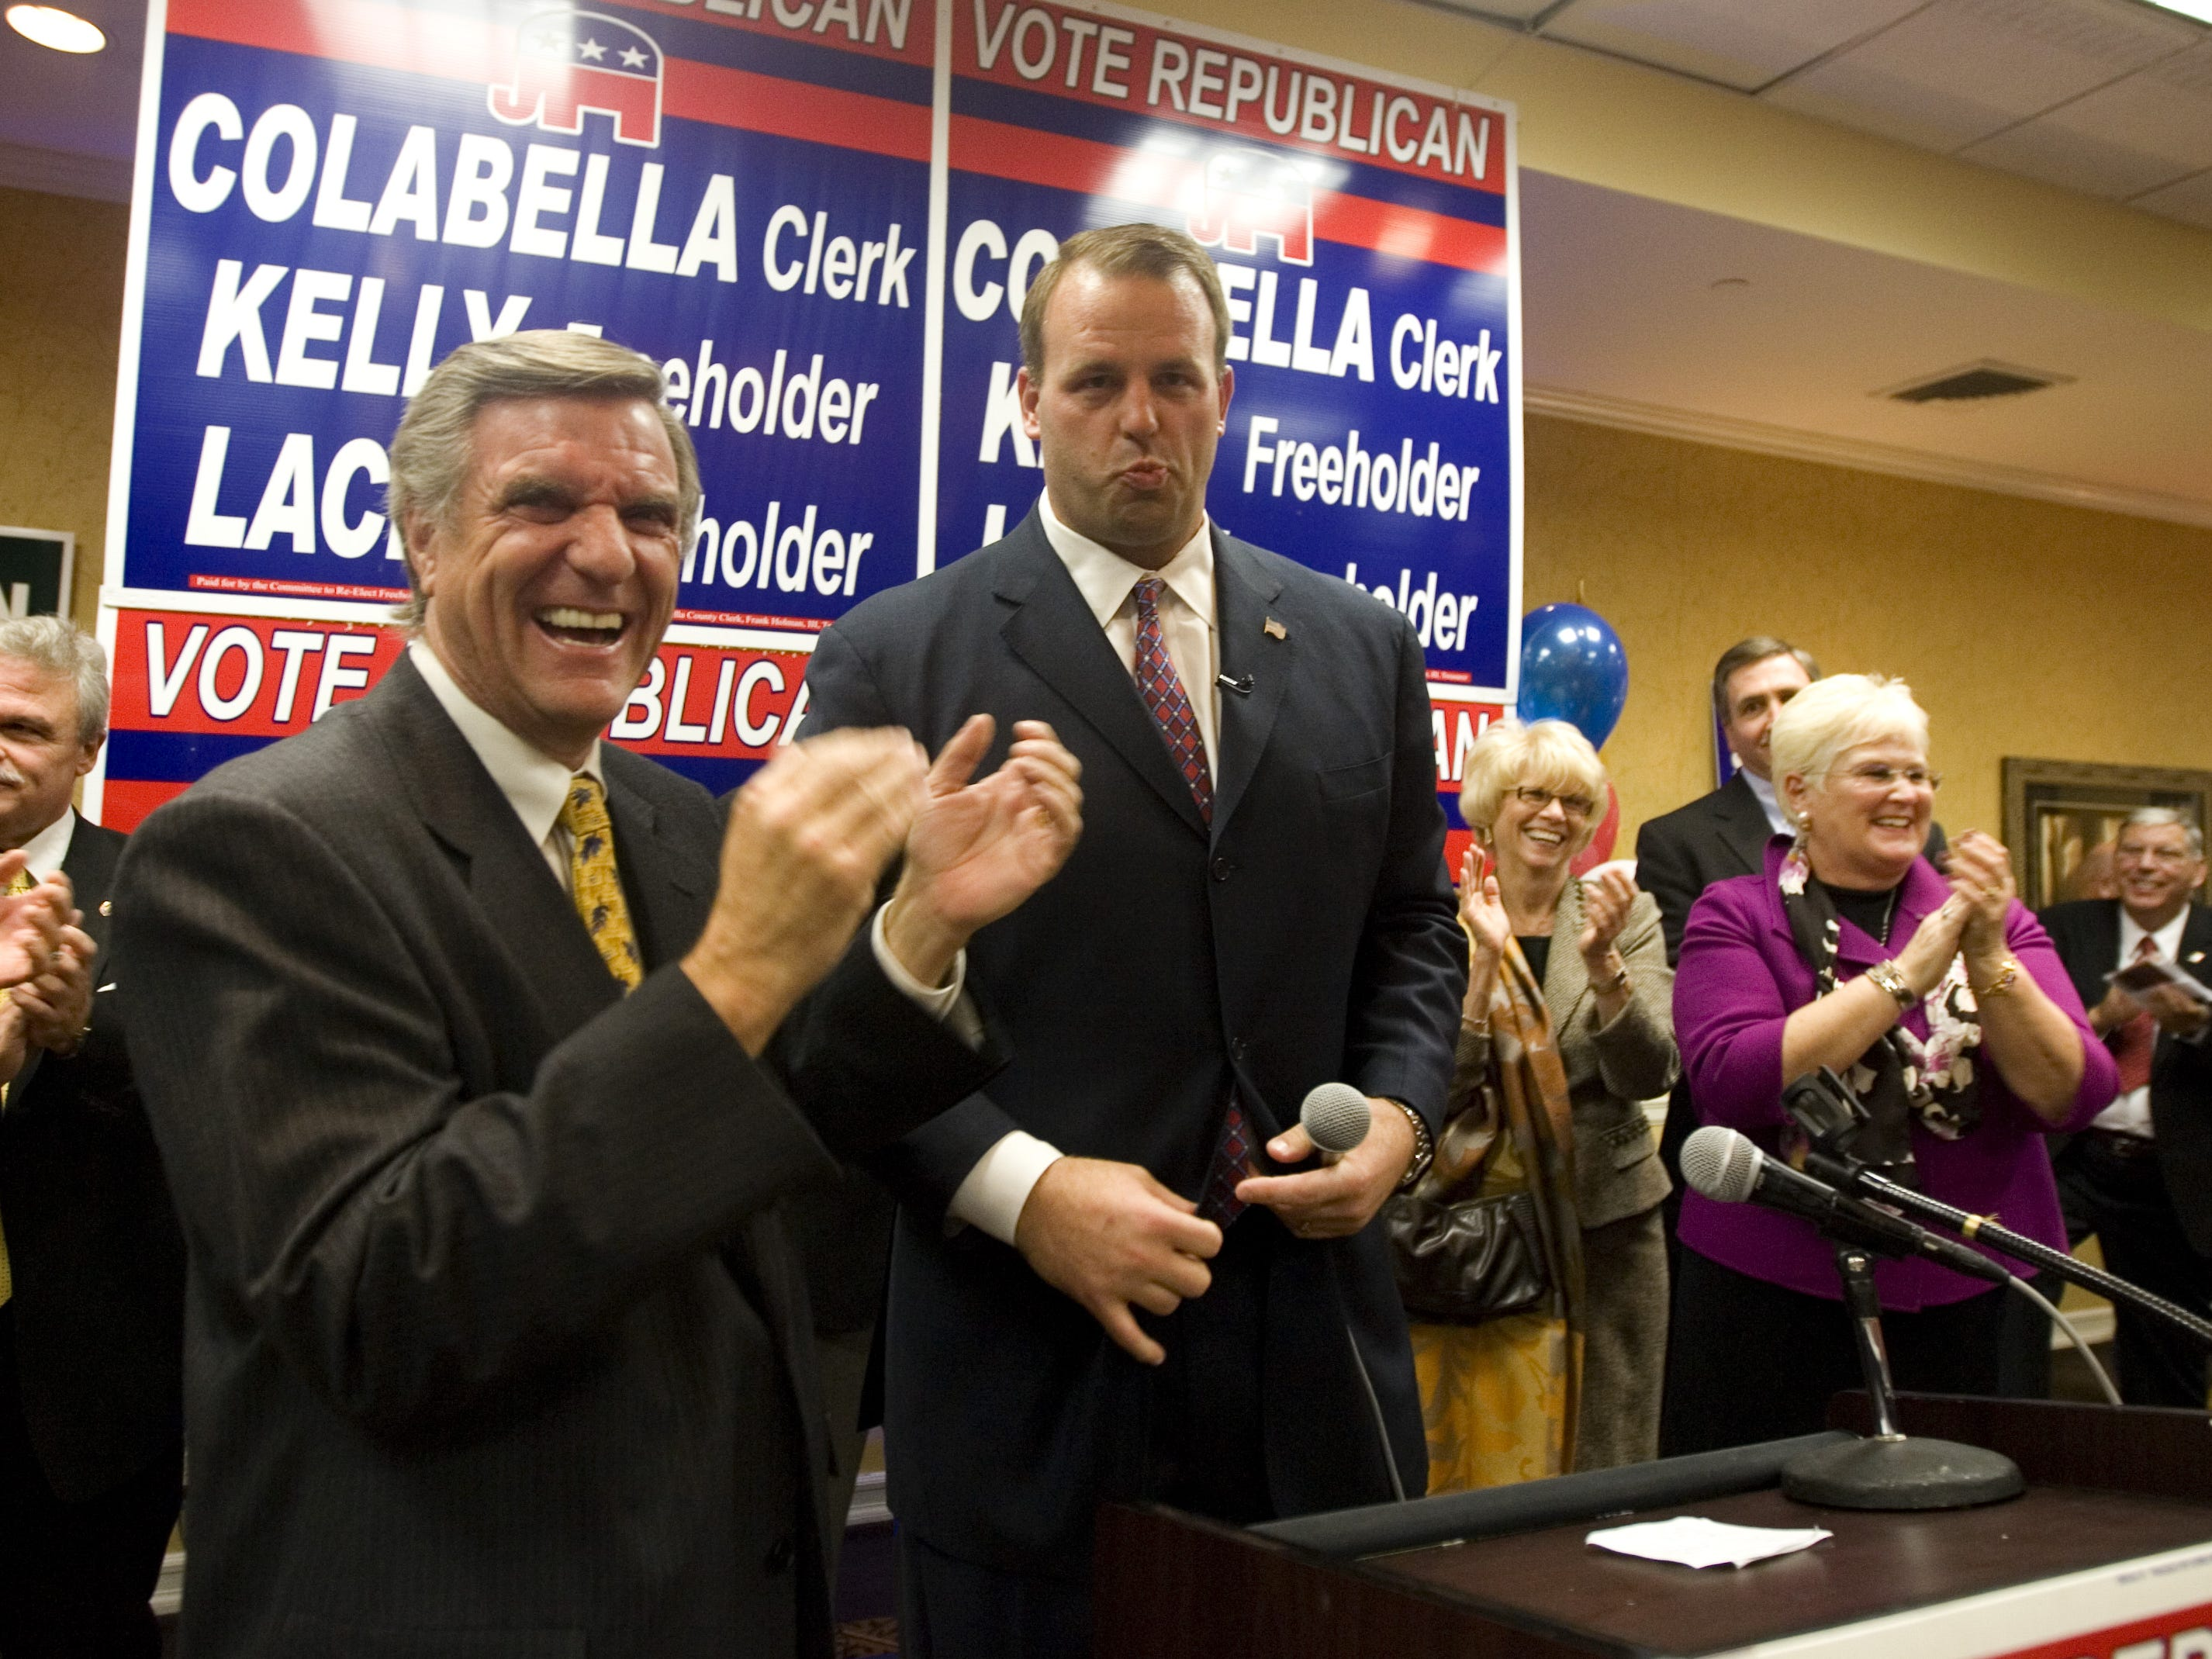 Republicans gather at the Holiday Inn in Toms River awaiting election results. George Gilmore, Ocean County GOP leader with Jon Runyan just after victory was announced.  Doug Hood/ Asbury Park Press- Toms River, NJ- 11.02.10 (#87496)